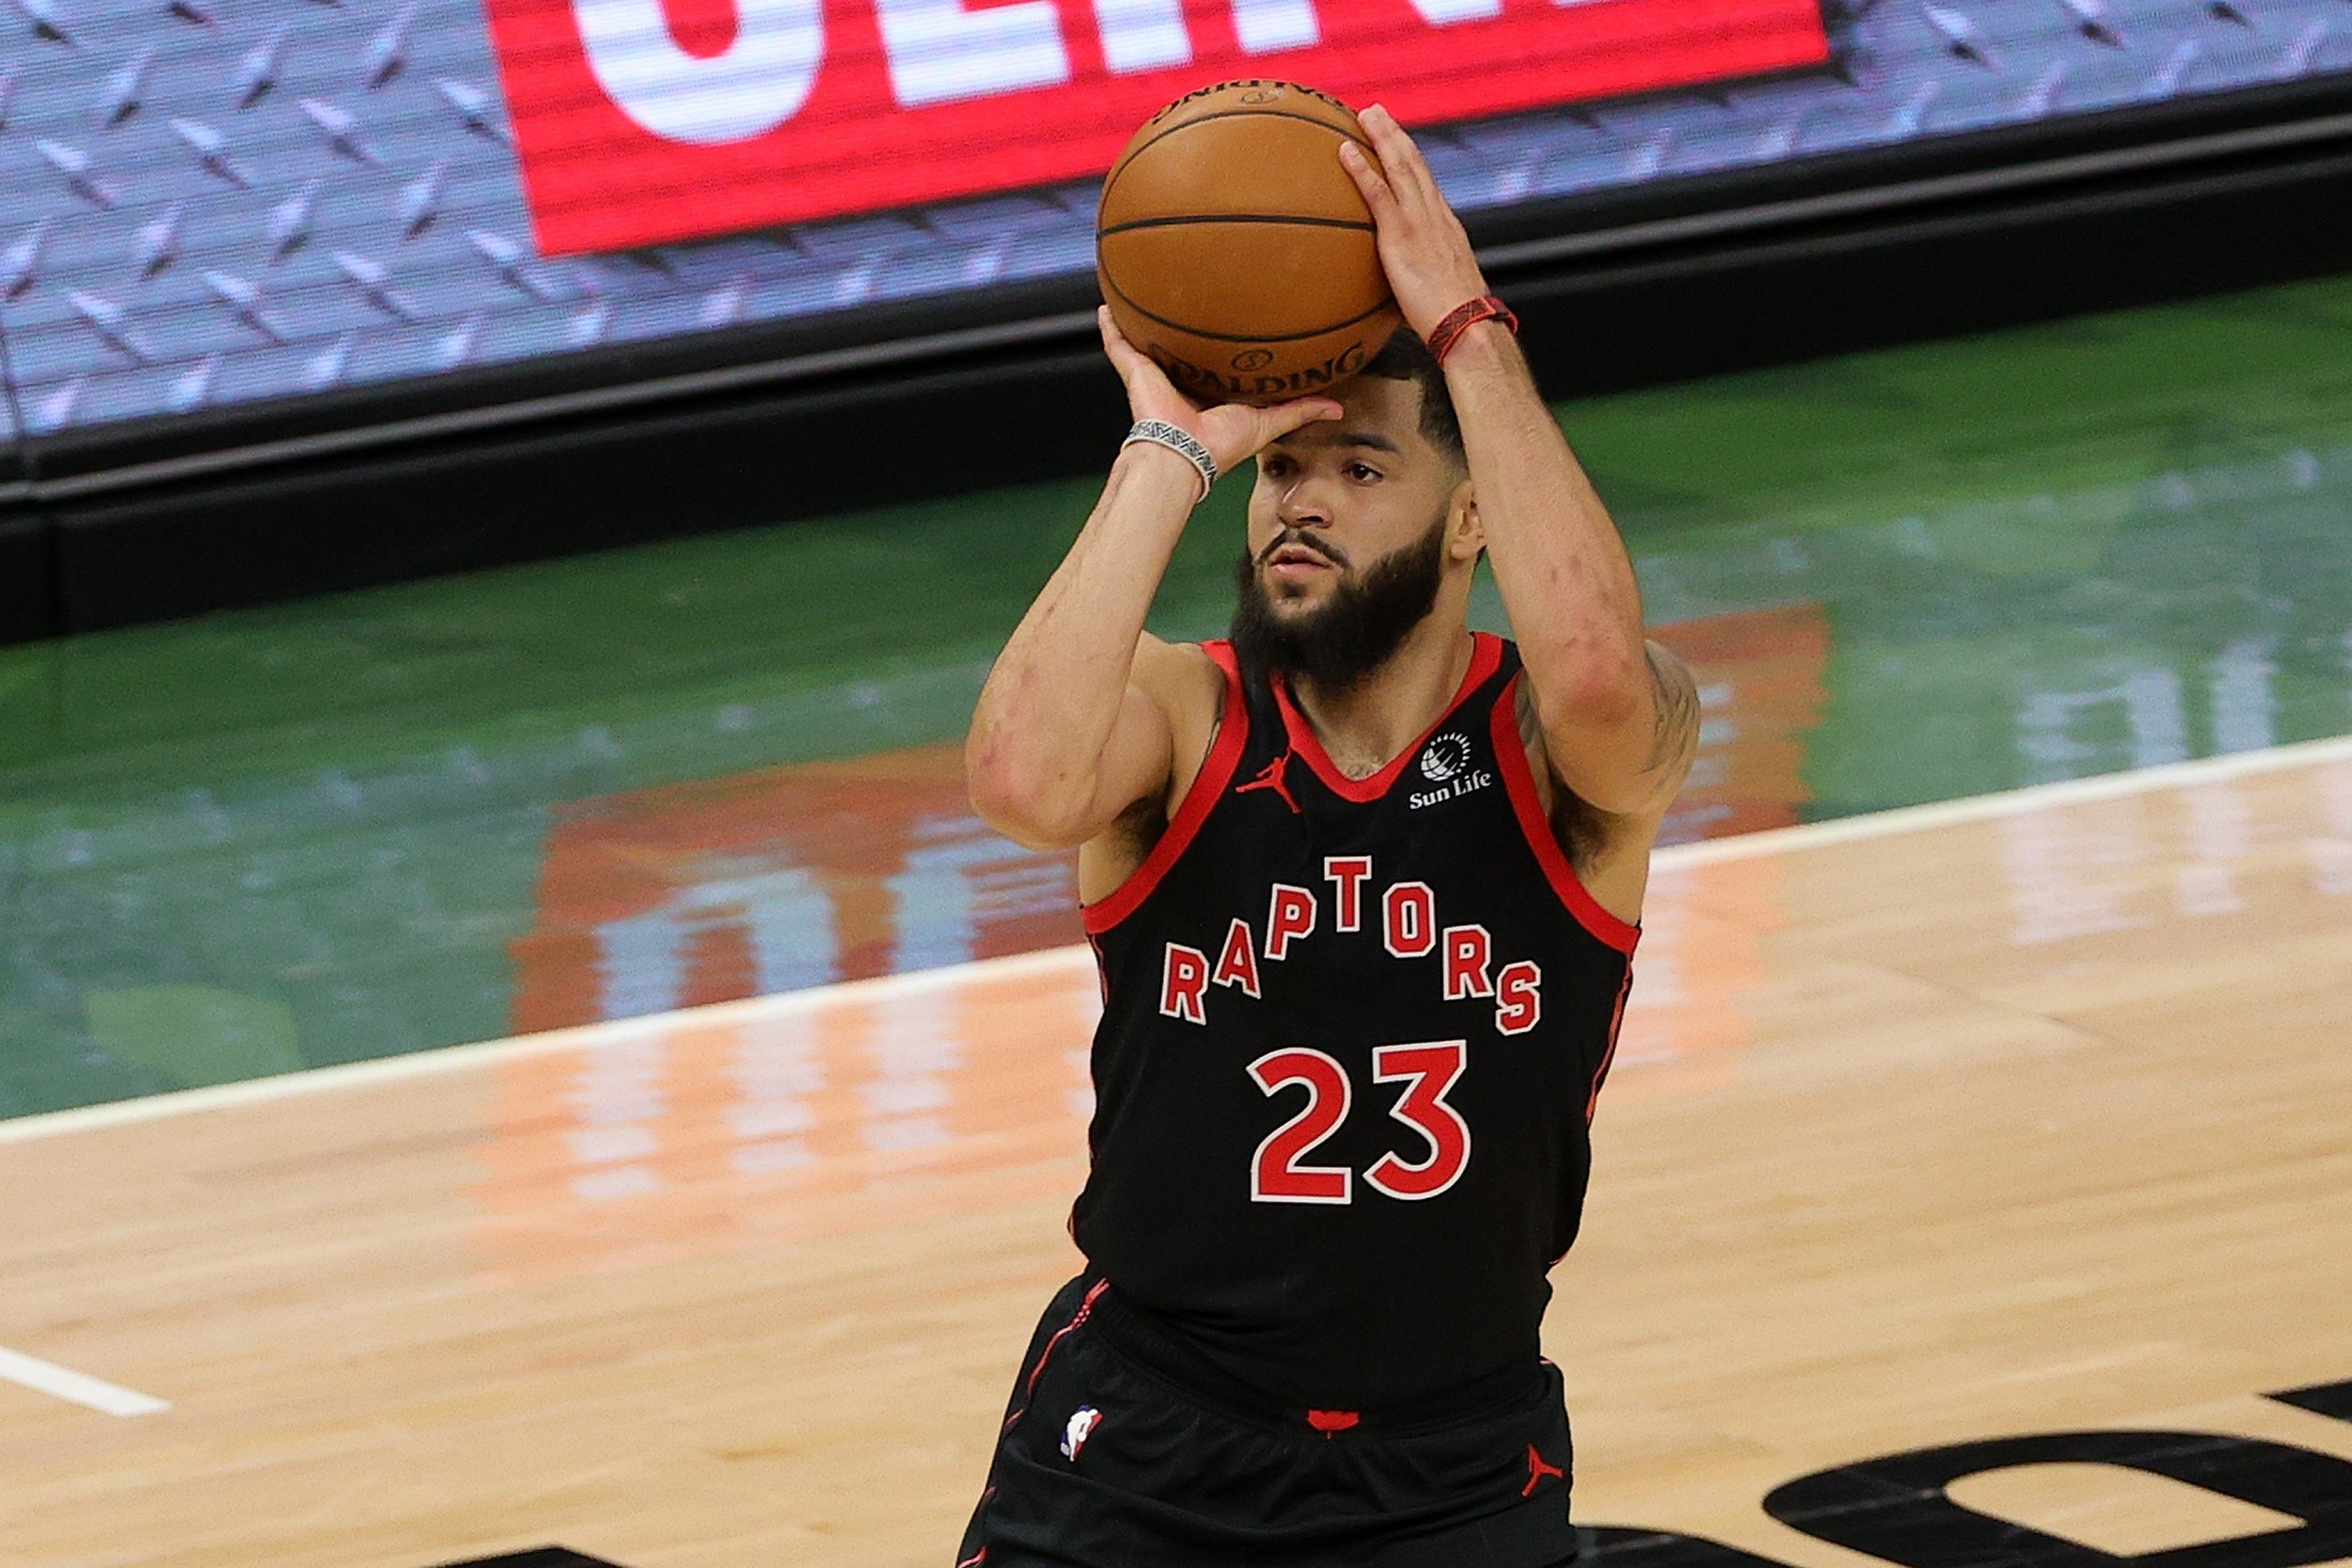 Toronto Raptors Fred VanVleet takes a shot during the first half of a game against the Milwaukee Bucks at Fiserv Forum, Milwaukee, Wisconsin, Feb. 16, 2021. (AFP Photo)